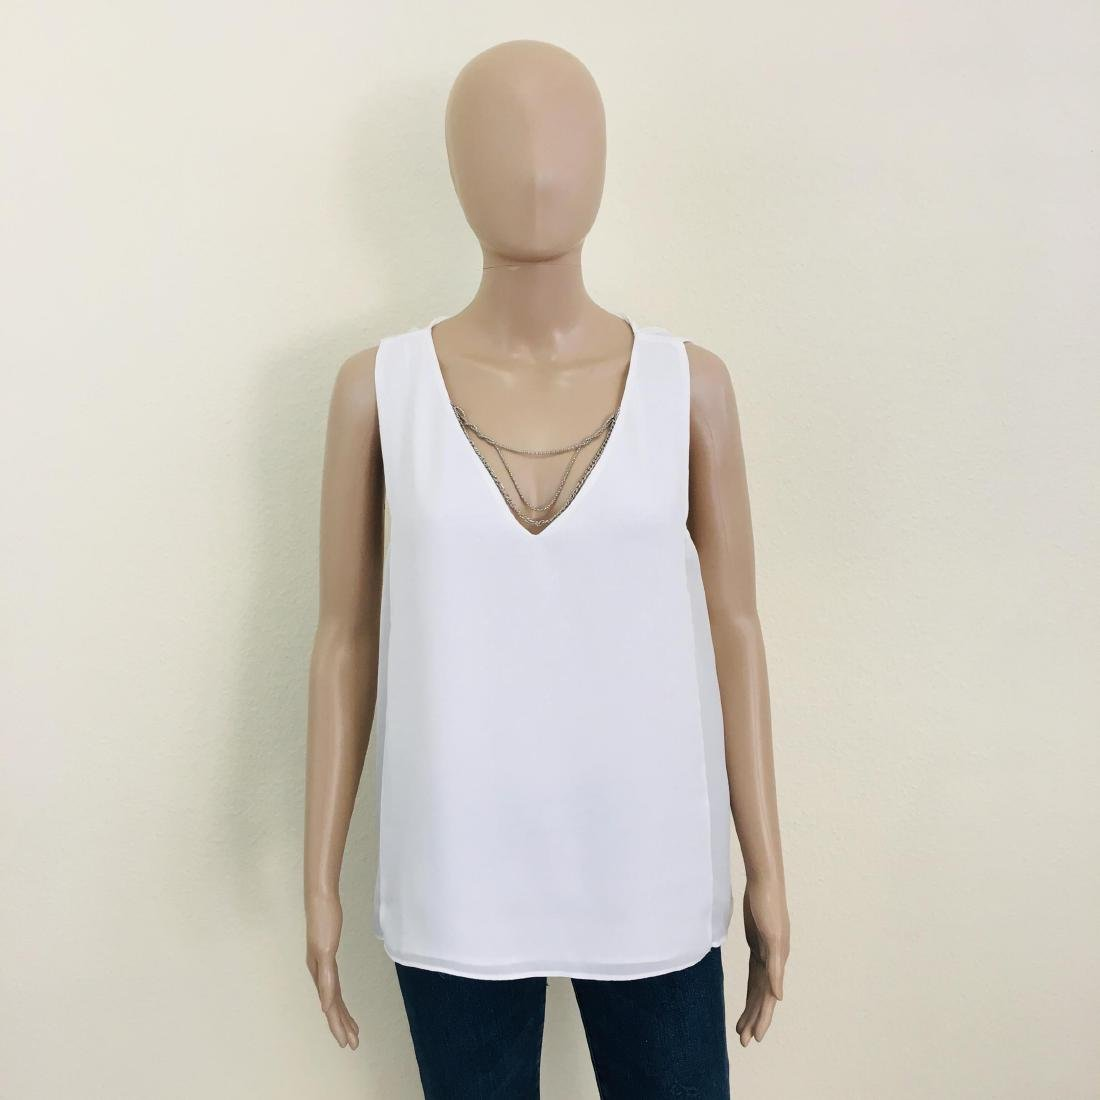 New Women's ZARA Top Blouse Size M